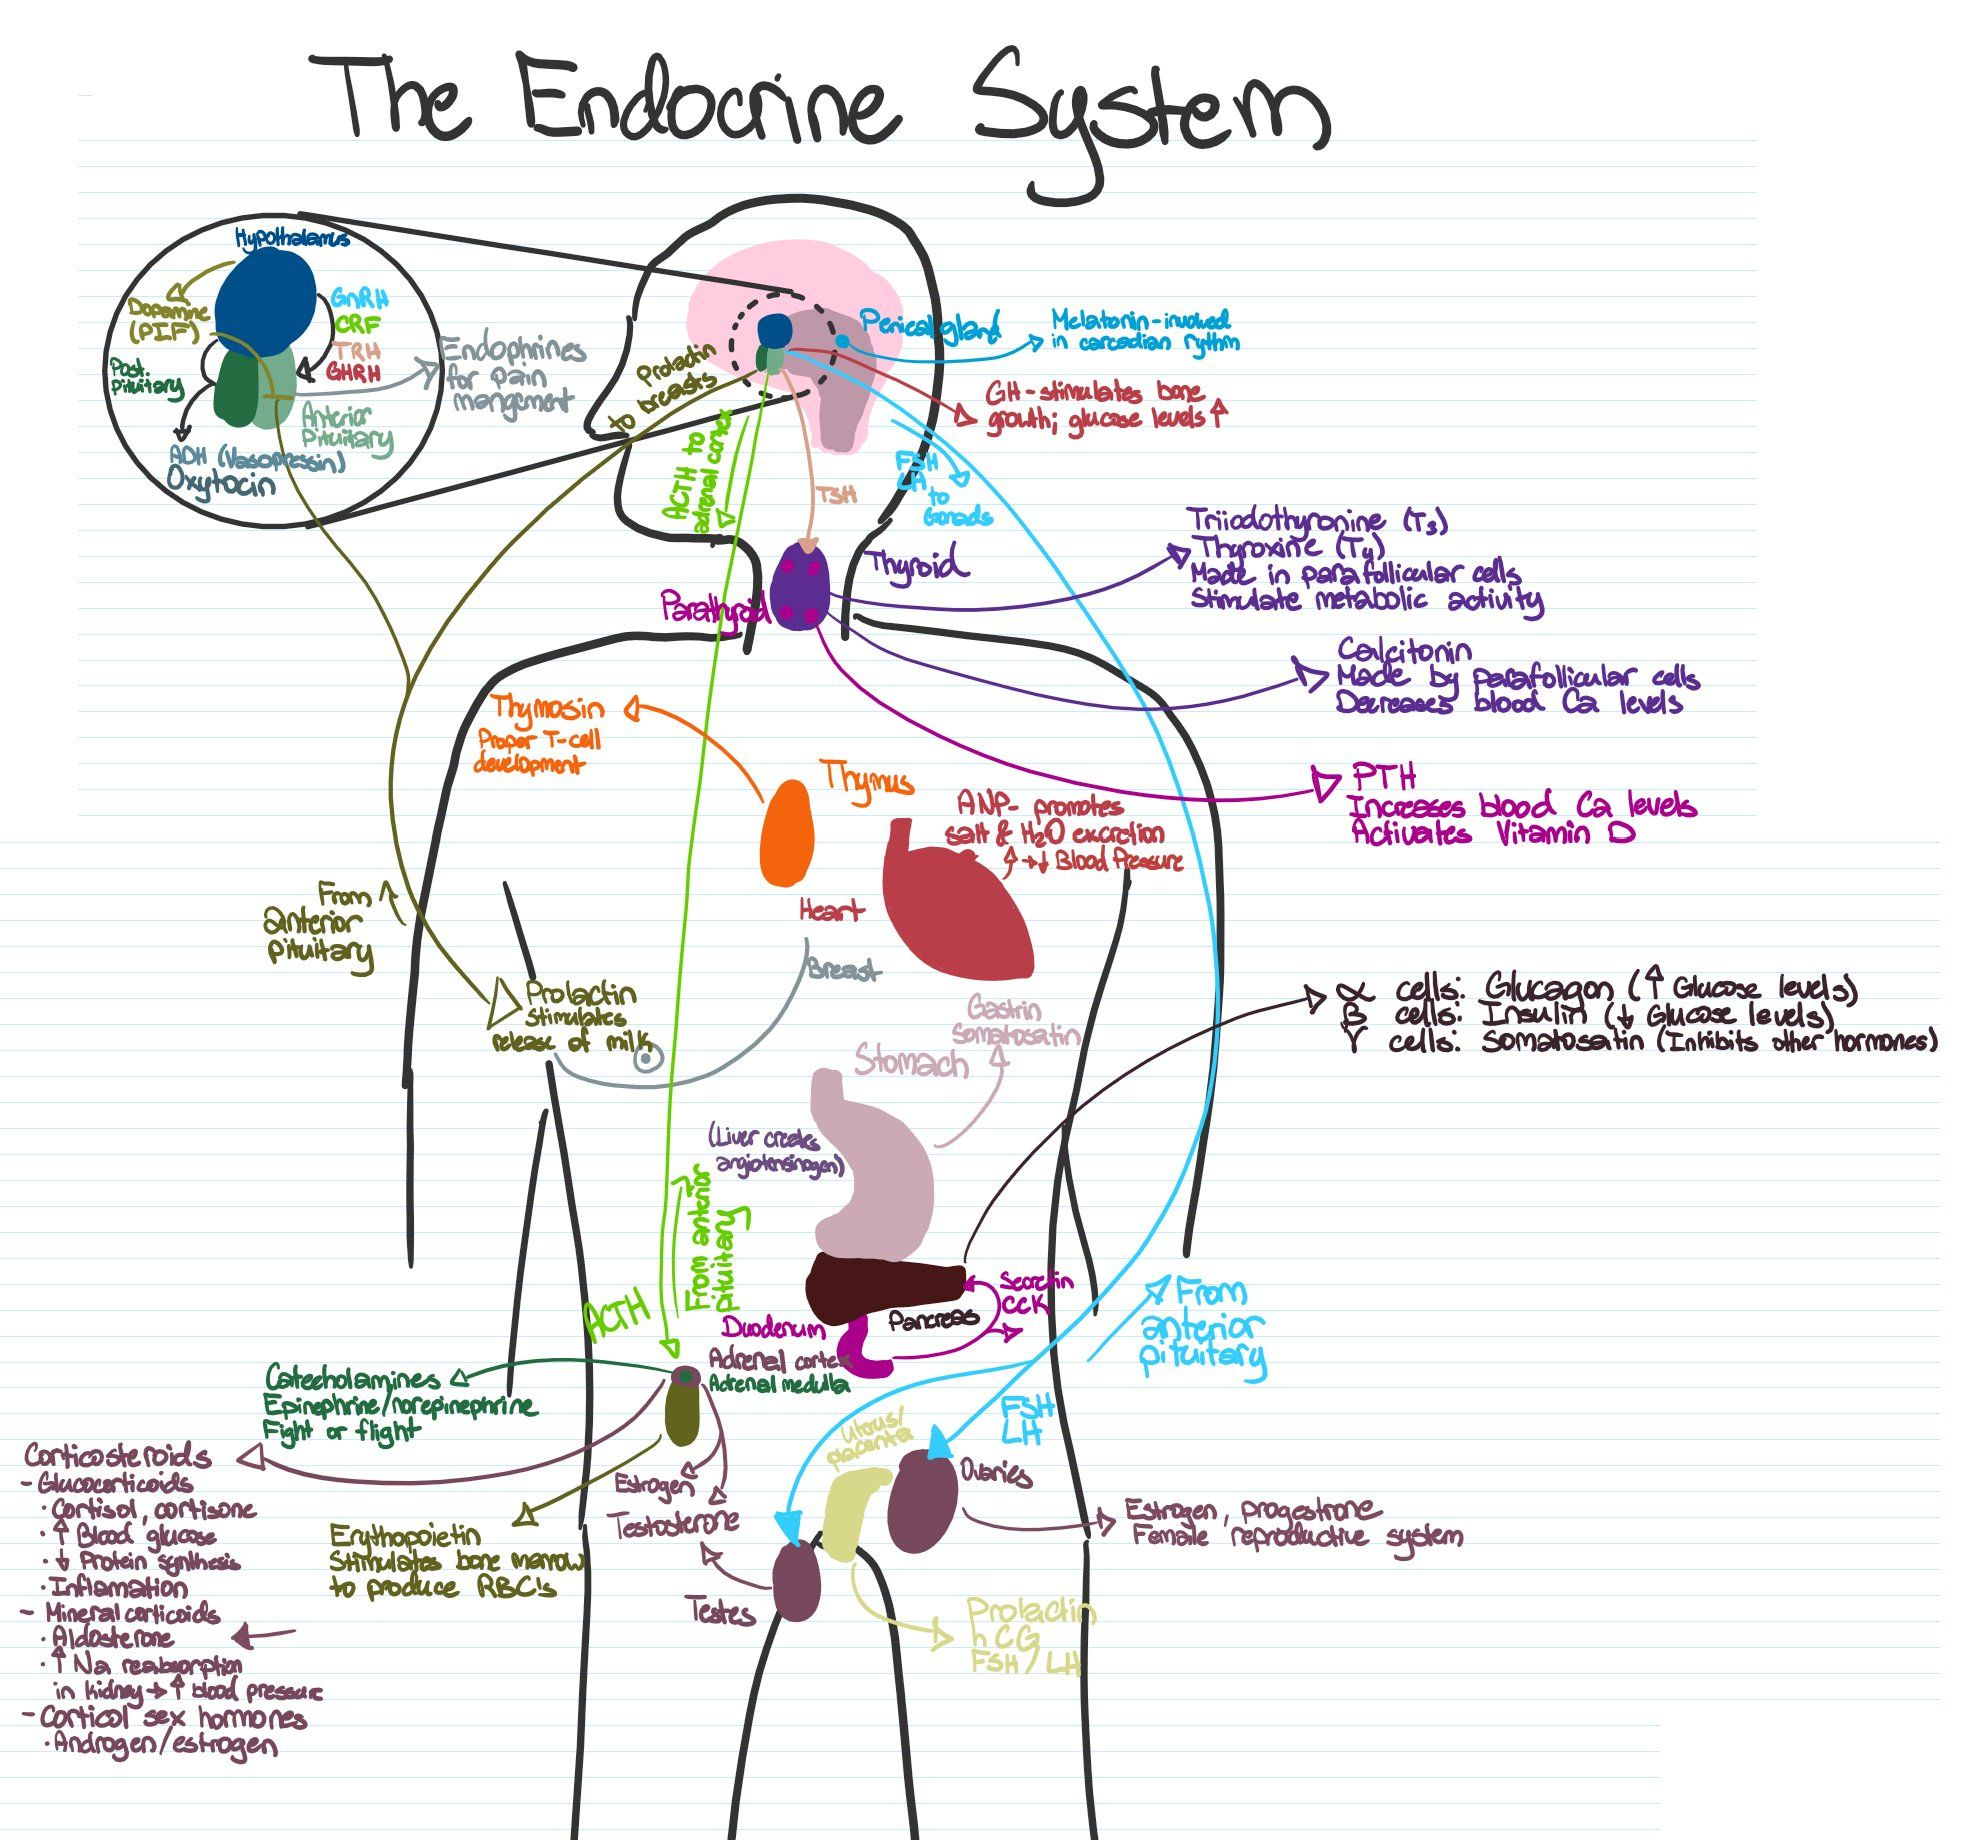 The Most Concise Visual Representation Of The Endocrine